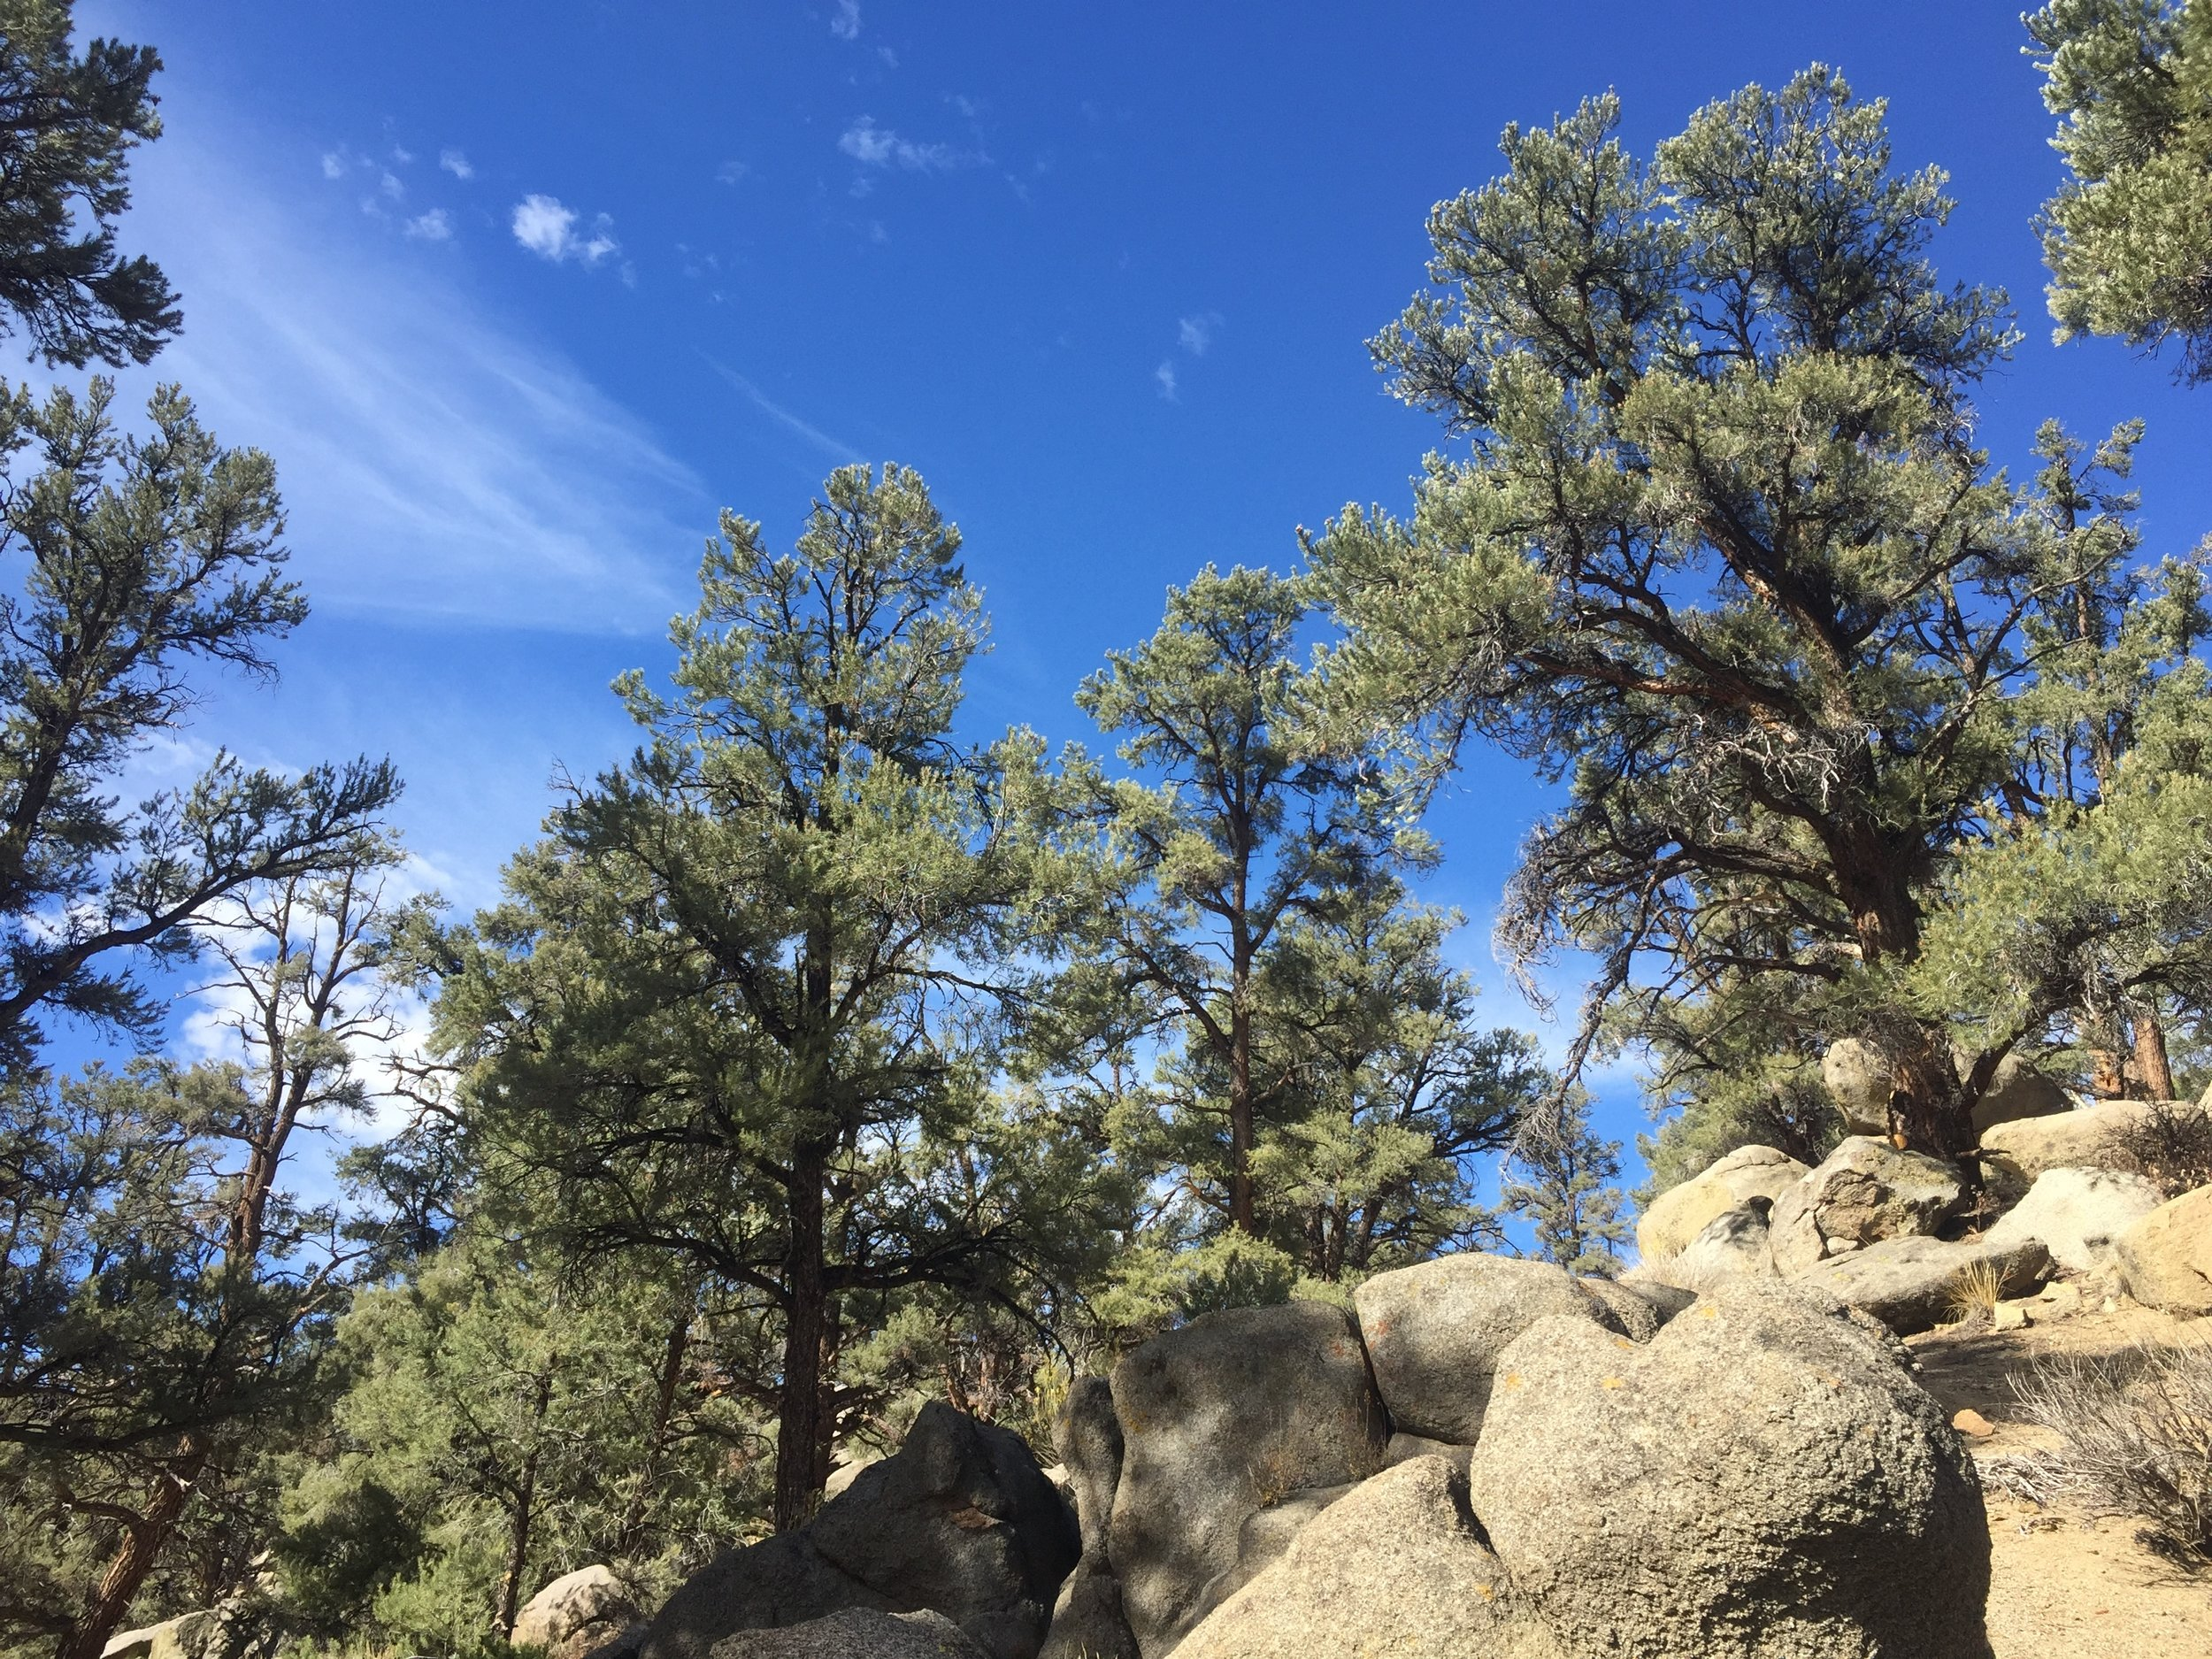 Pinyon Pines in the South Sierra Wilderness